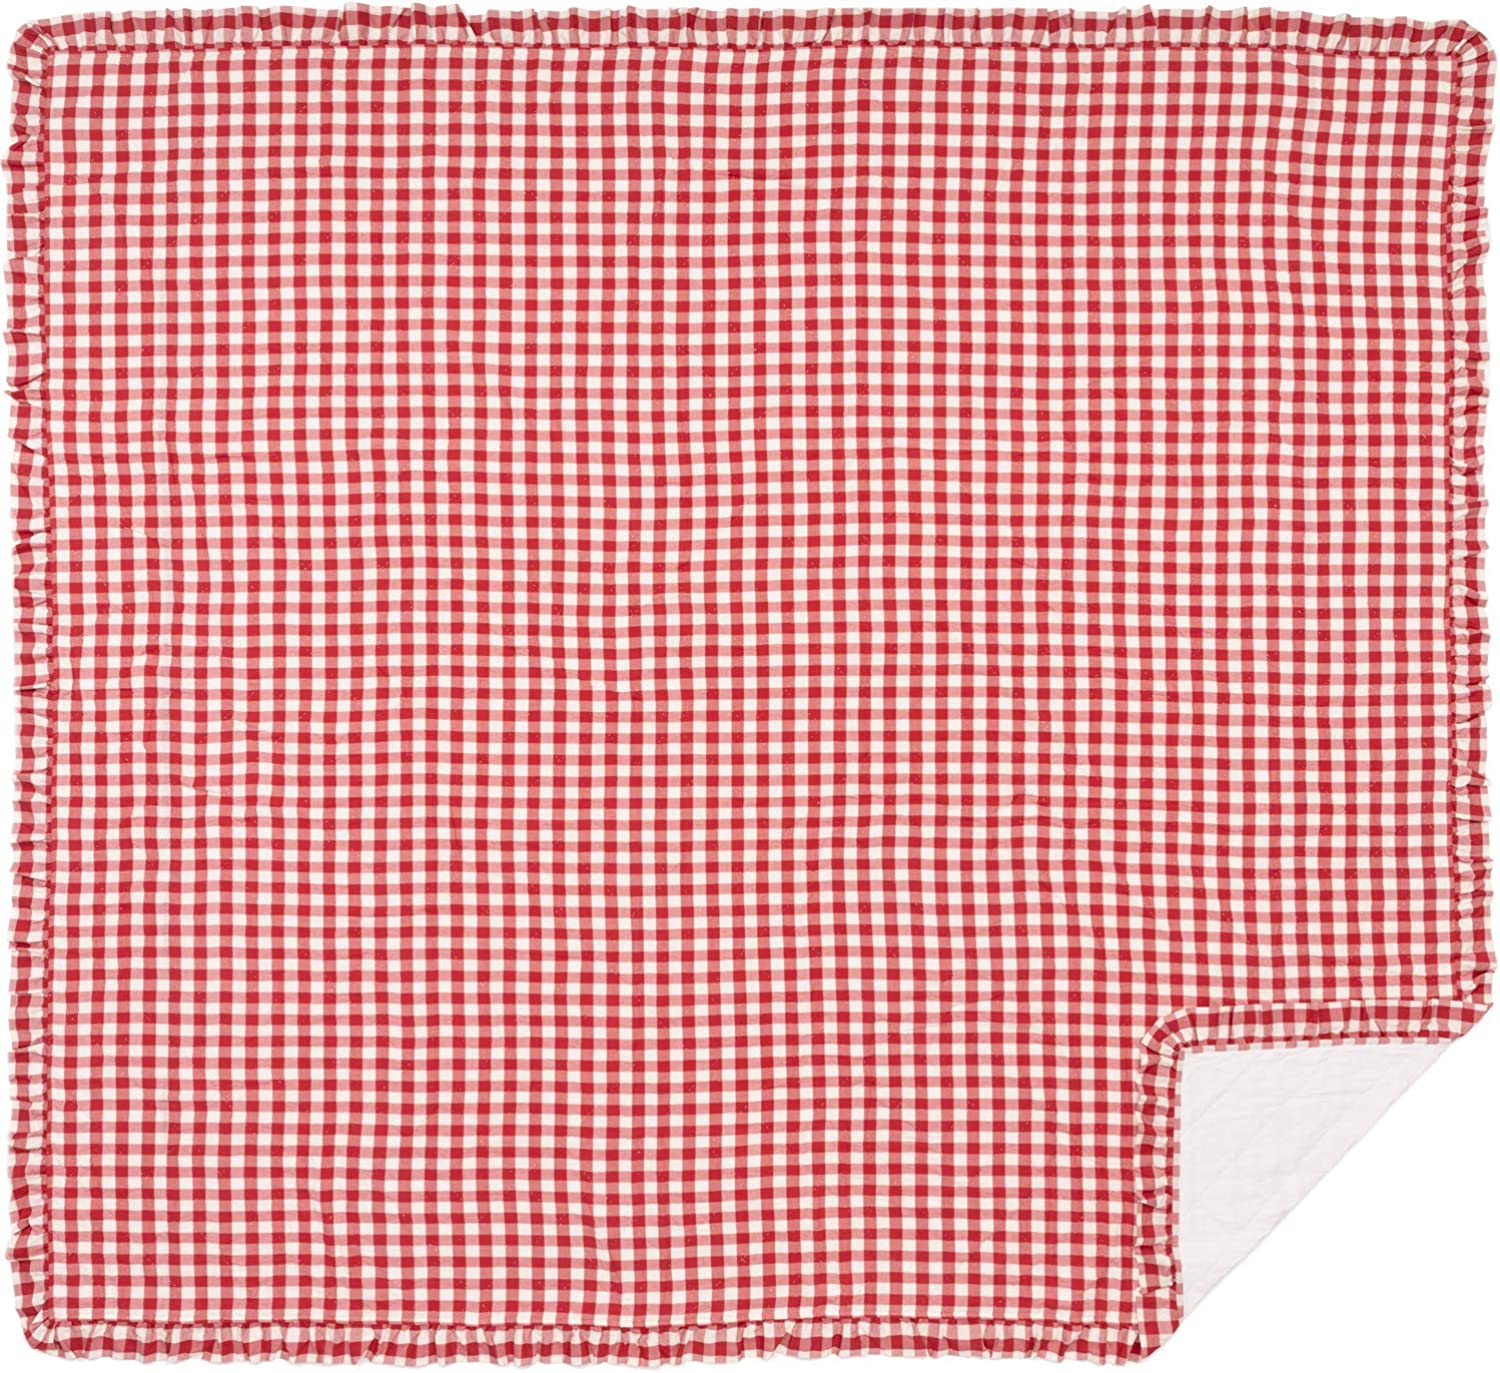 VHC Brands Farmhouse Bedding Annie Cotton Pre-Washed Buffalo Check King Coverlet, Red Country